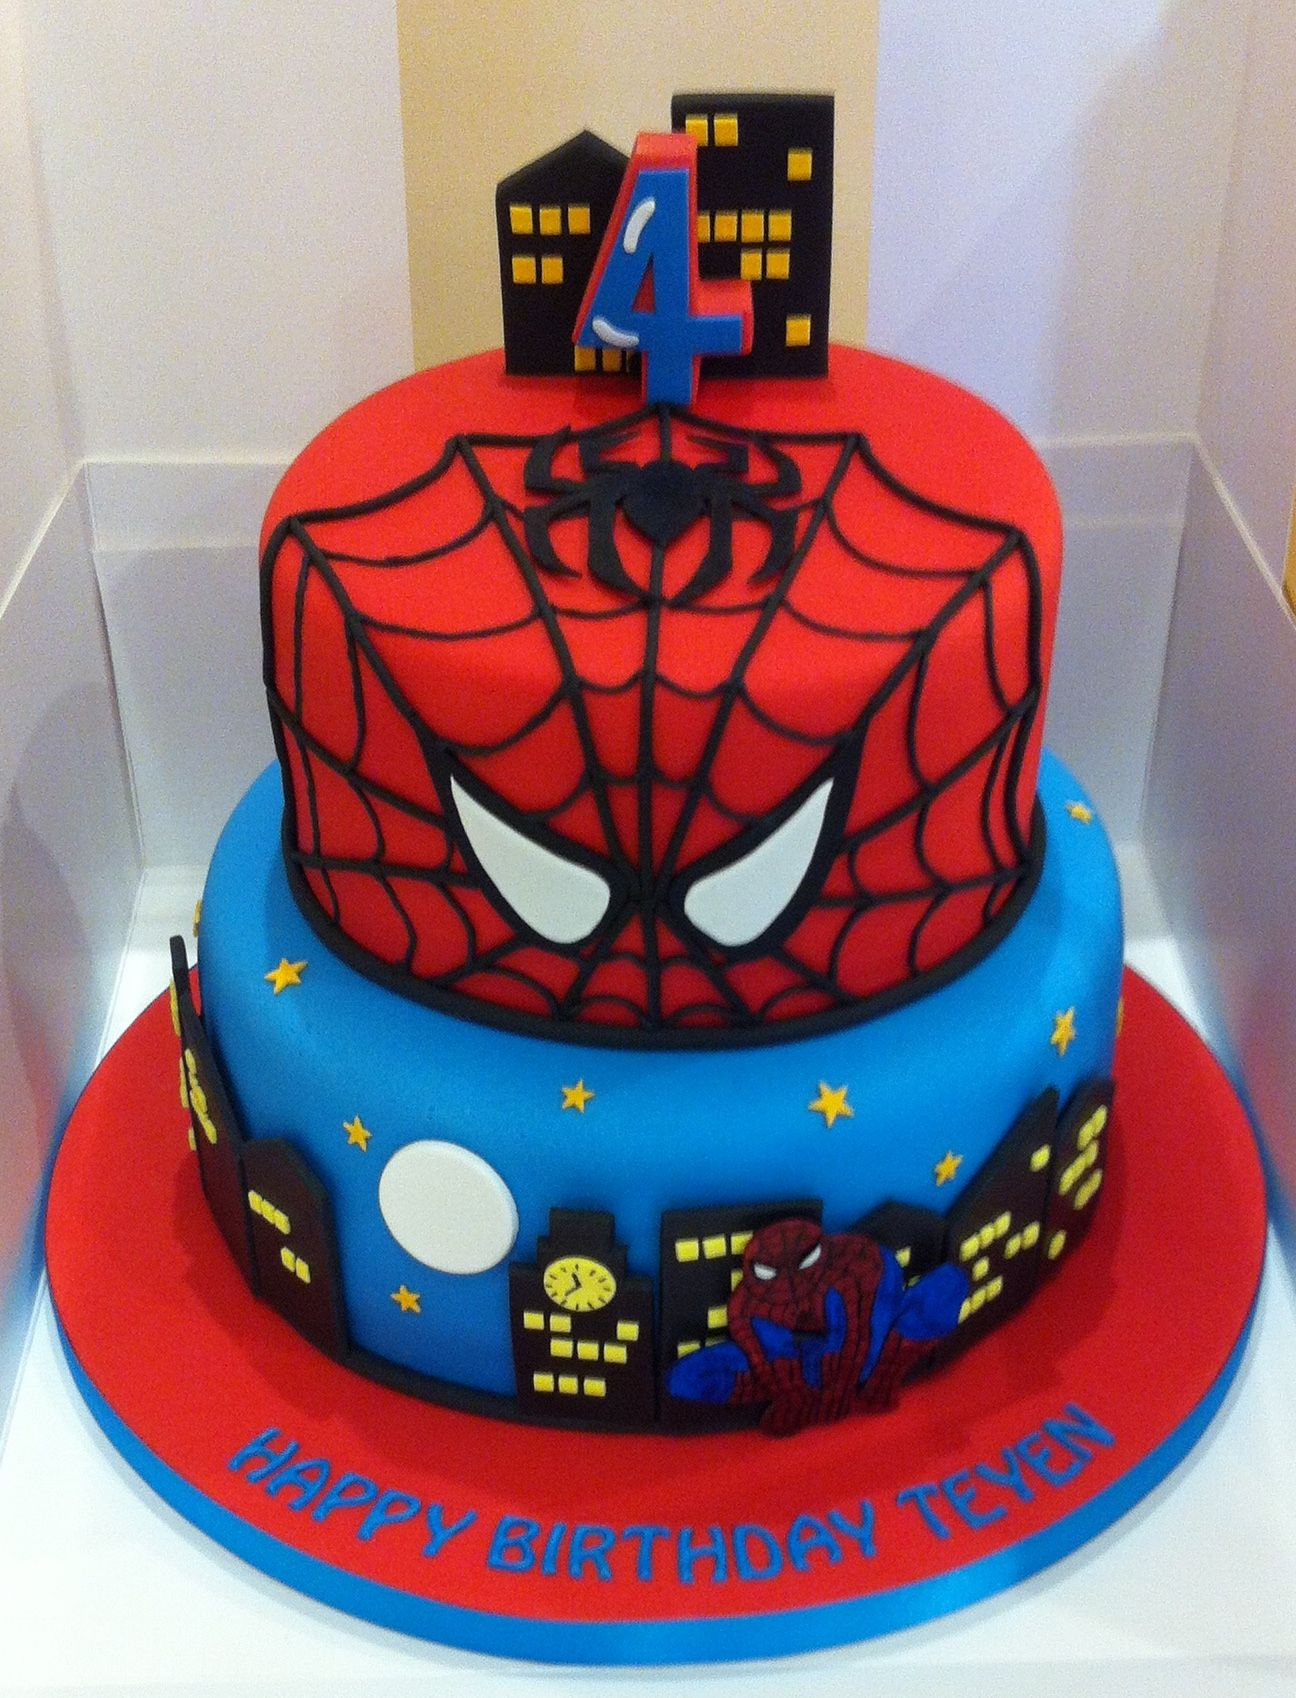 Awe Inspiring 27 Marvelous Image Of Spiderman Birthday Cakes Birijus Com Personalised Birthday Cards Paralily Jamesorg